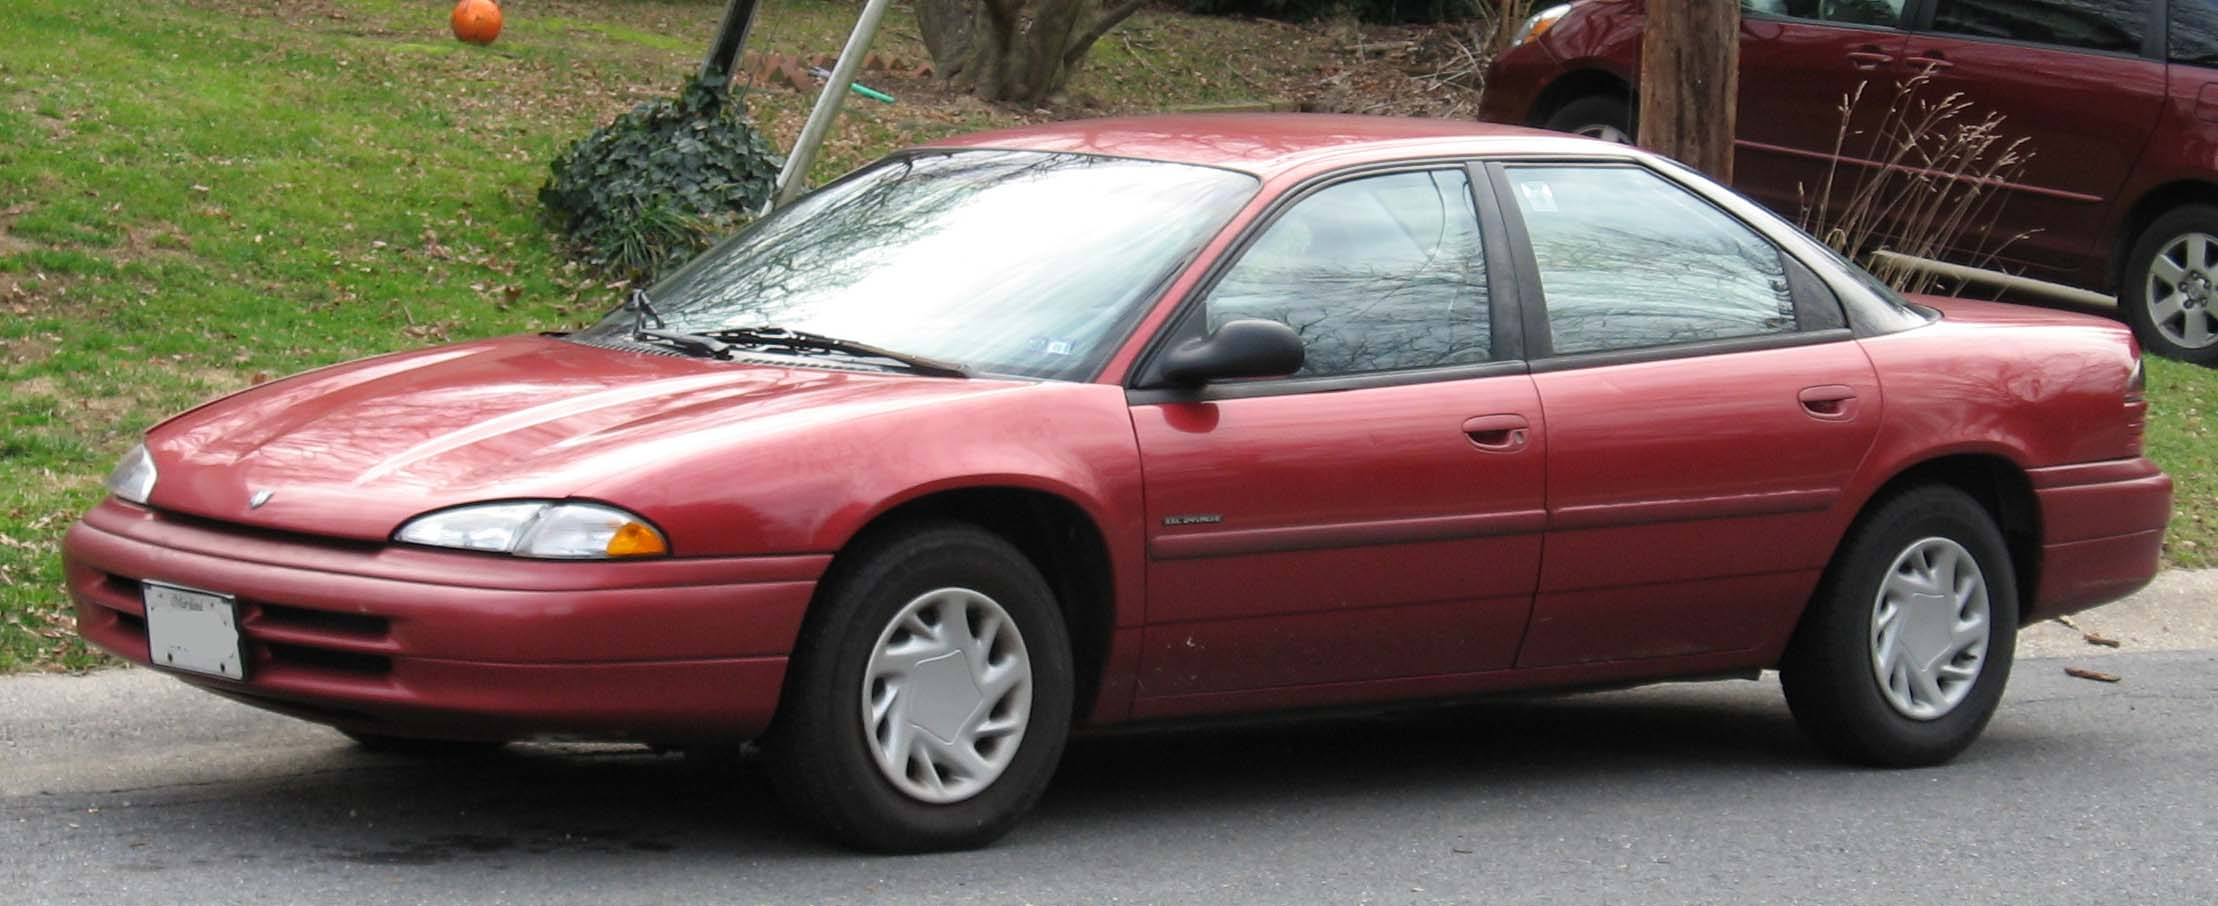 File 1st dodge intrepid jpg